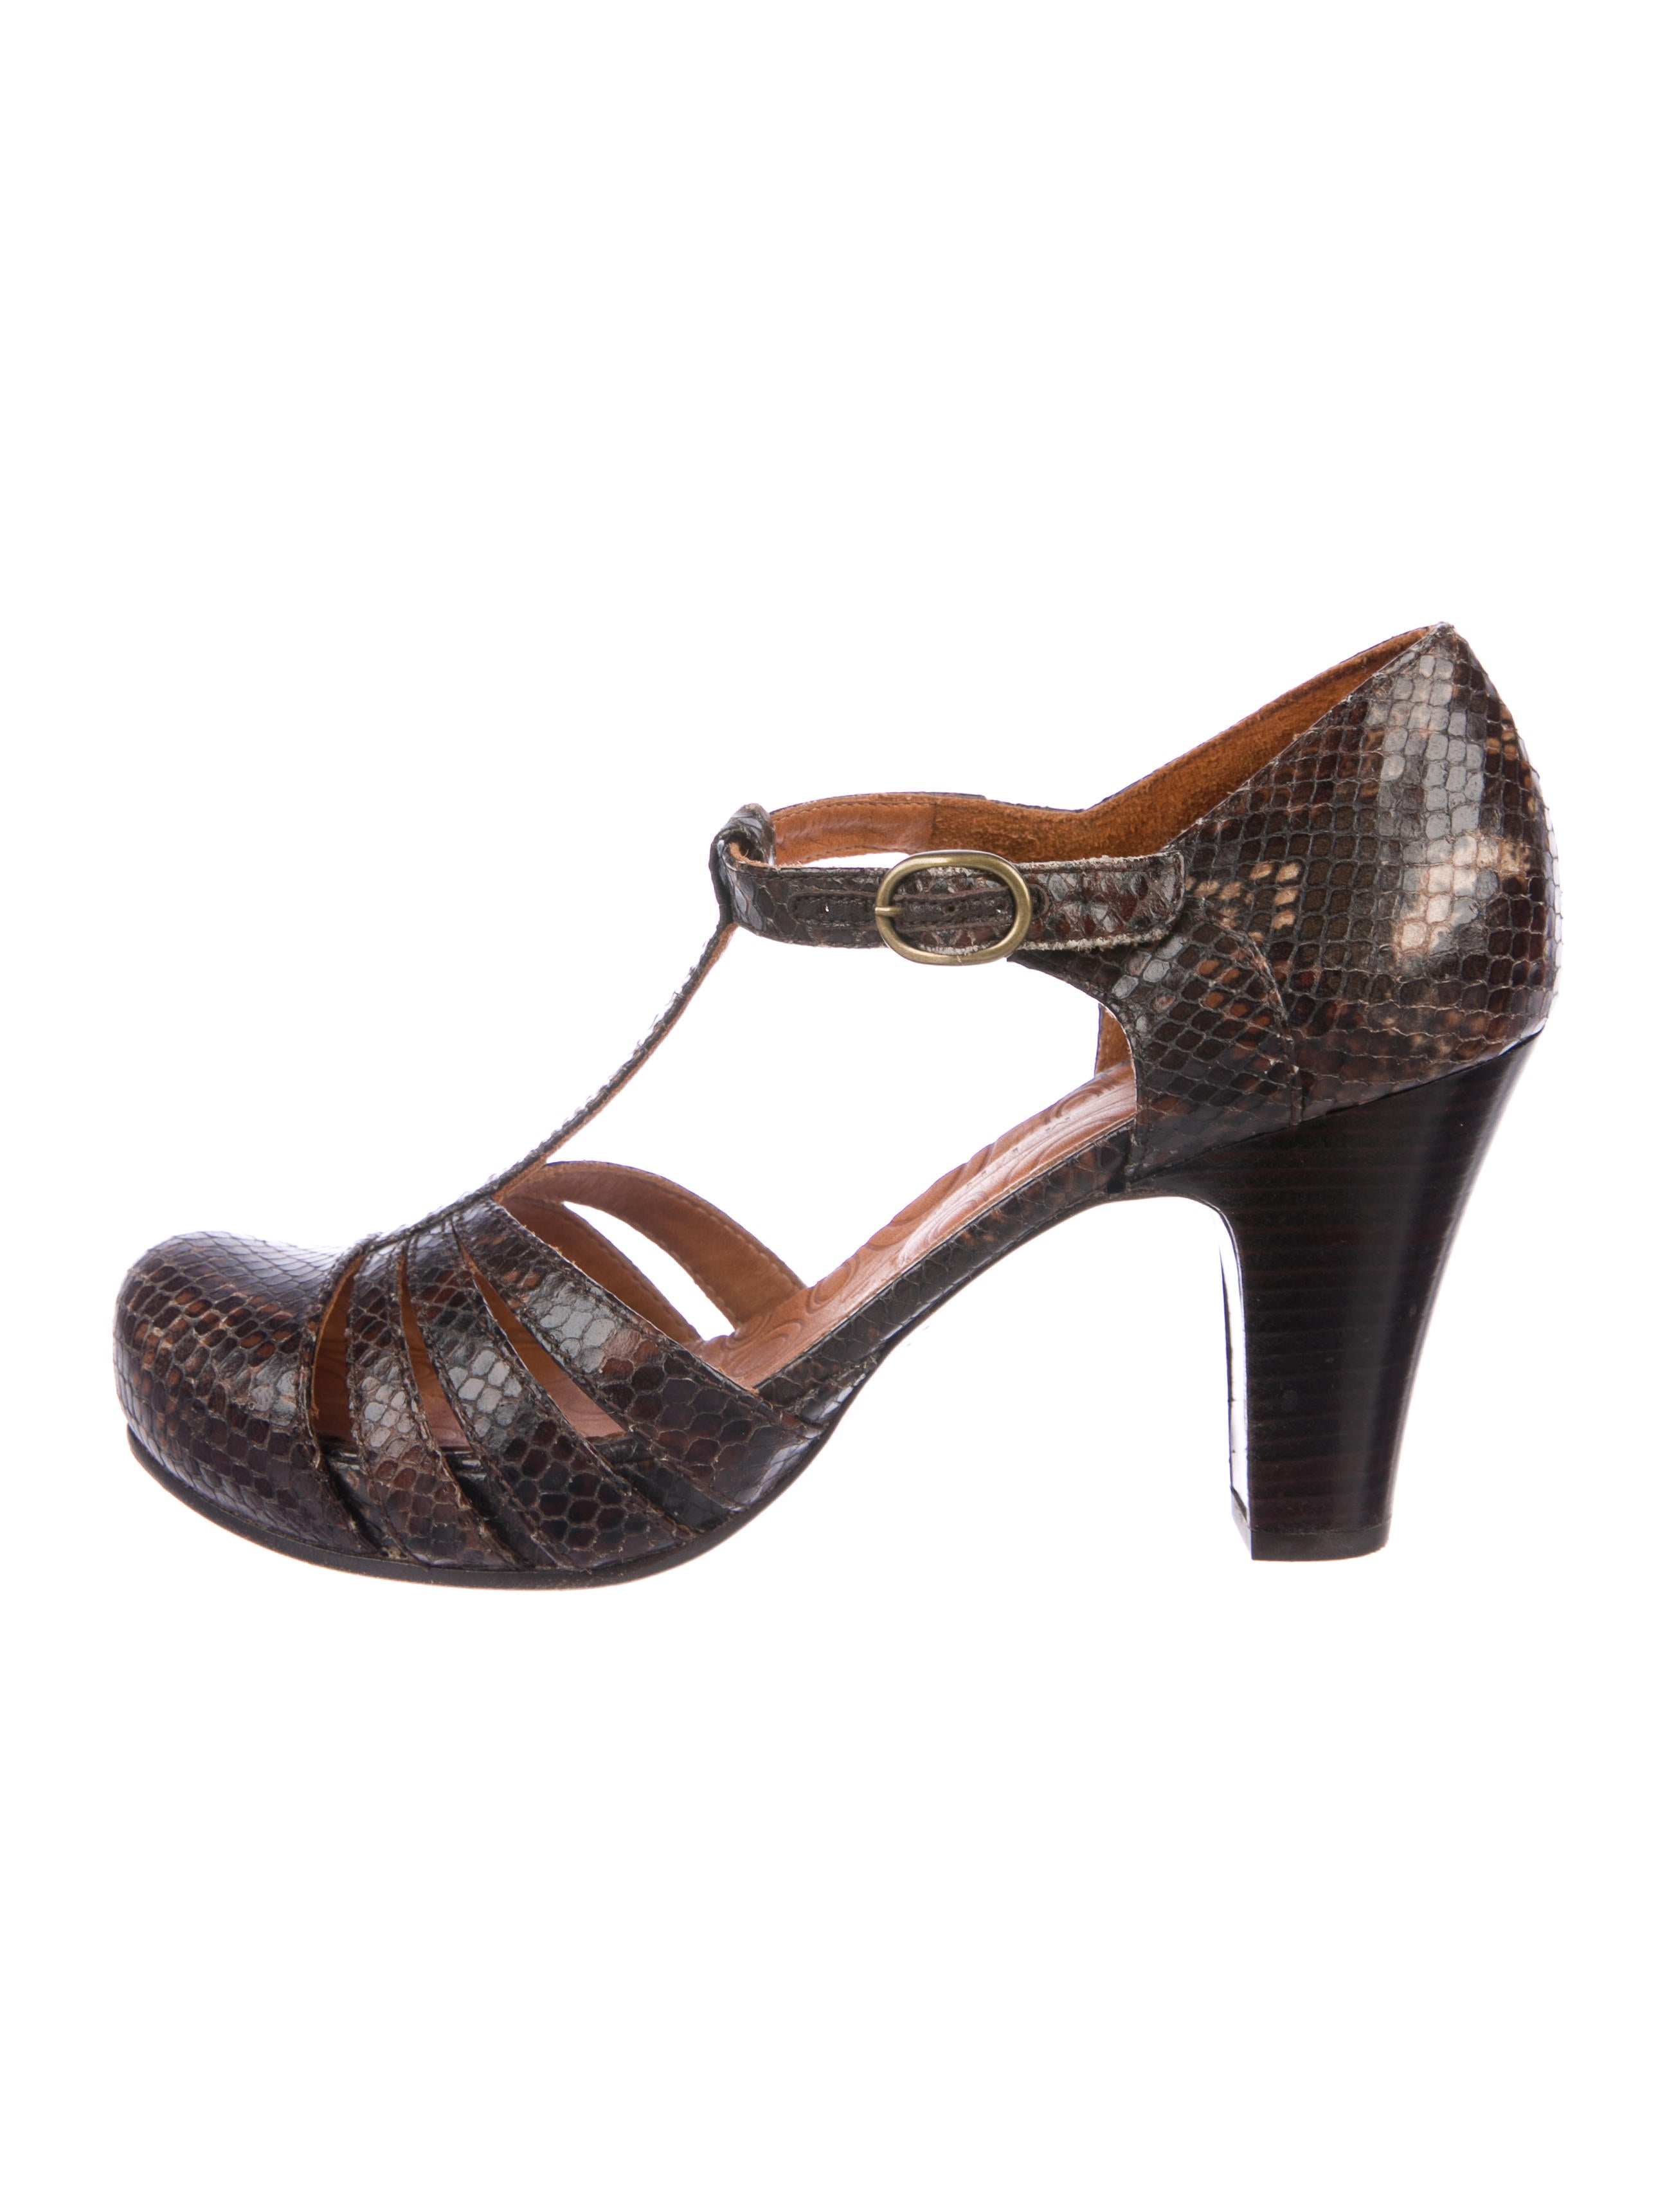 cheap price outlet cheap ebay Chie Mihara Embossed Leather Sandals buy cheap sale QGEWA6E7F